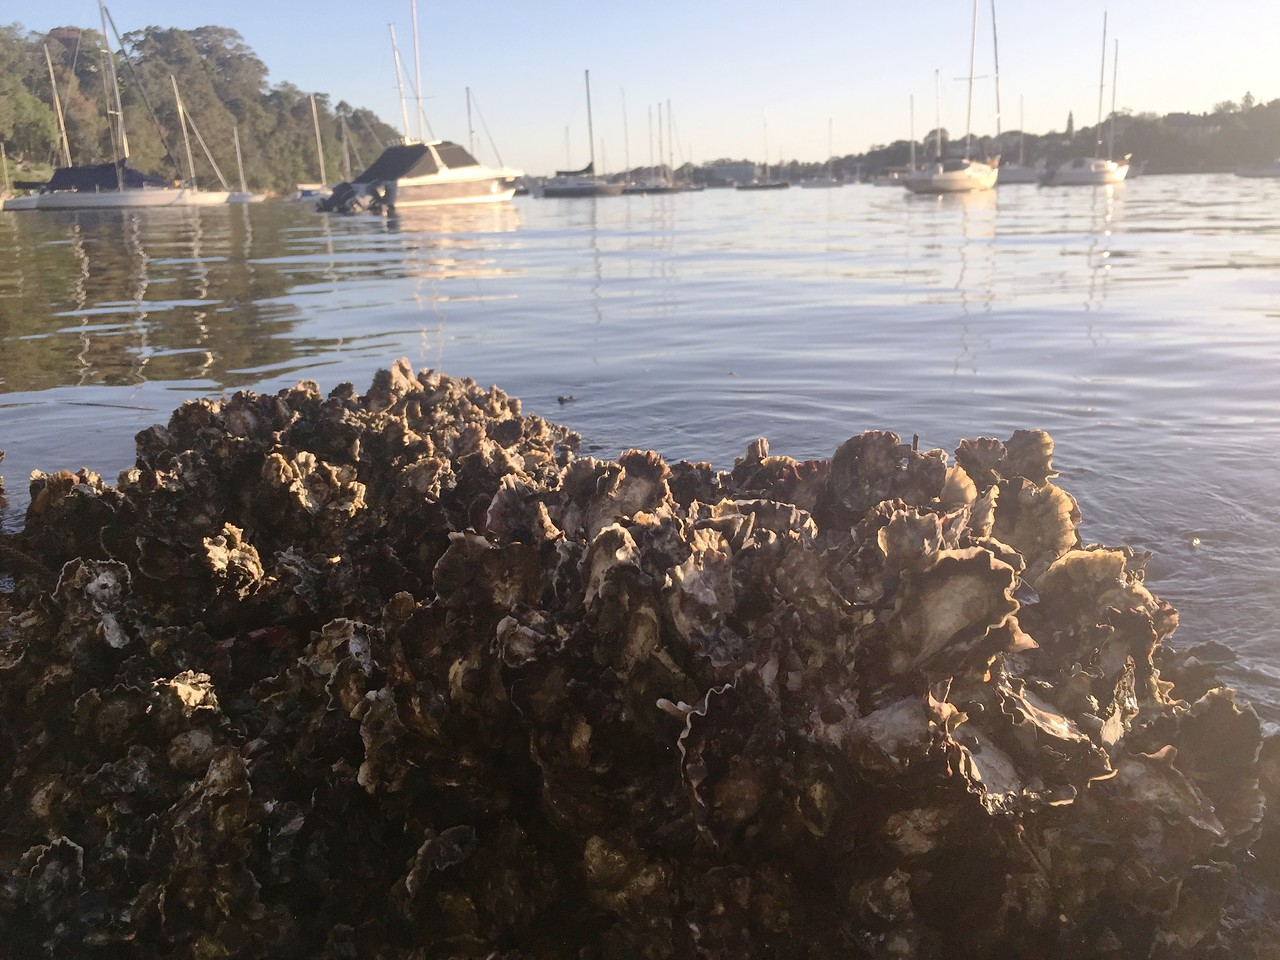 Saccostrea glomerata / Sydney rock oyster reef in Sydney Harbour (Greenwich). Photo acknowledgement: Andy Myers